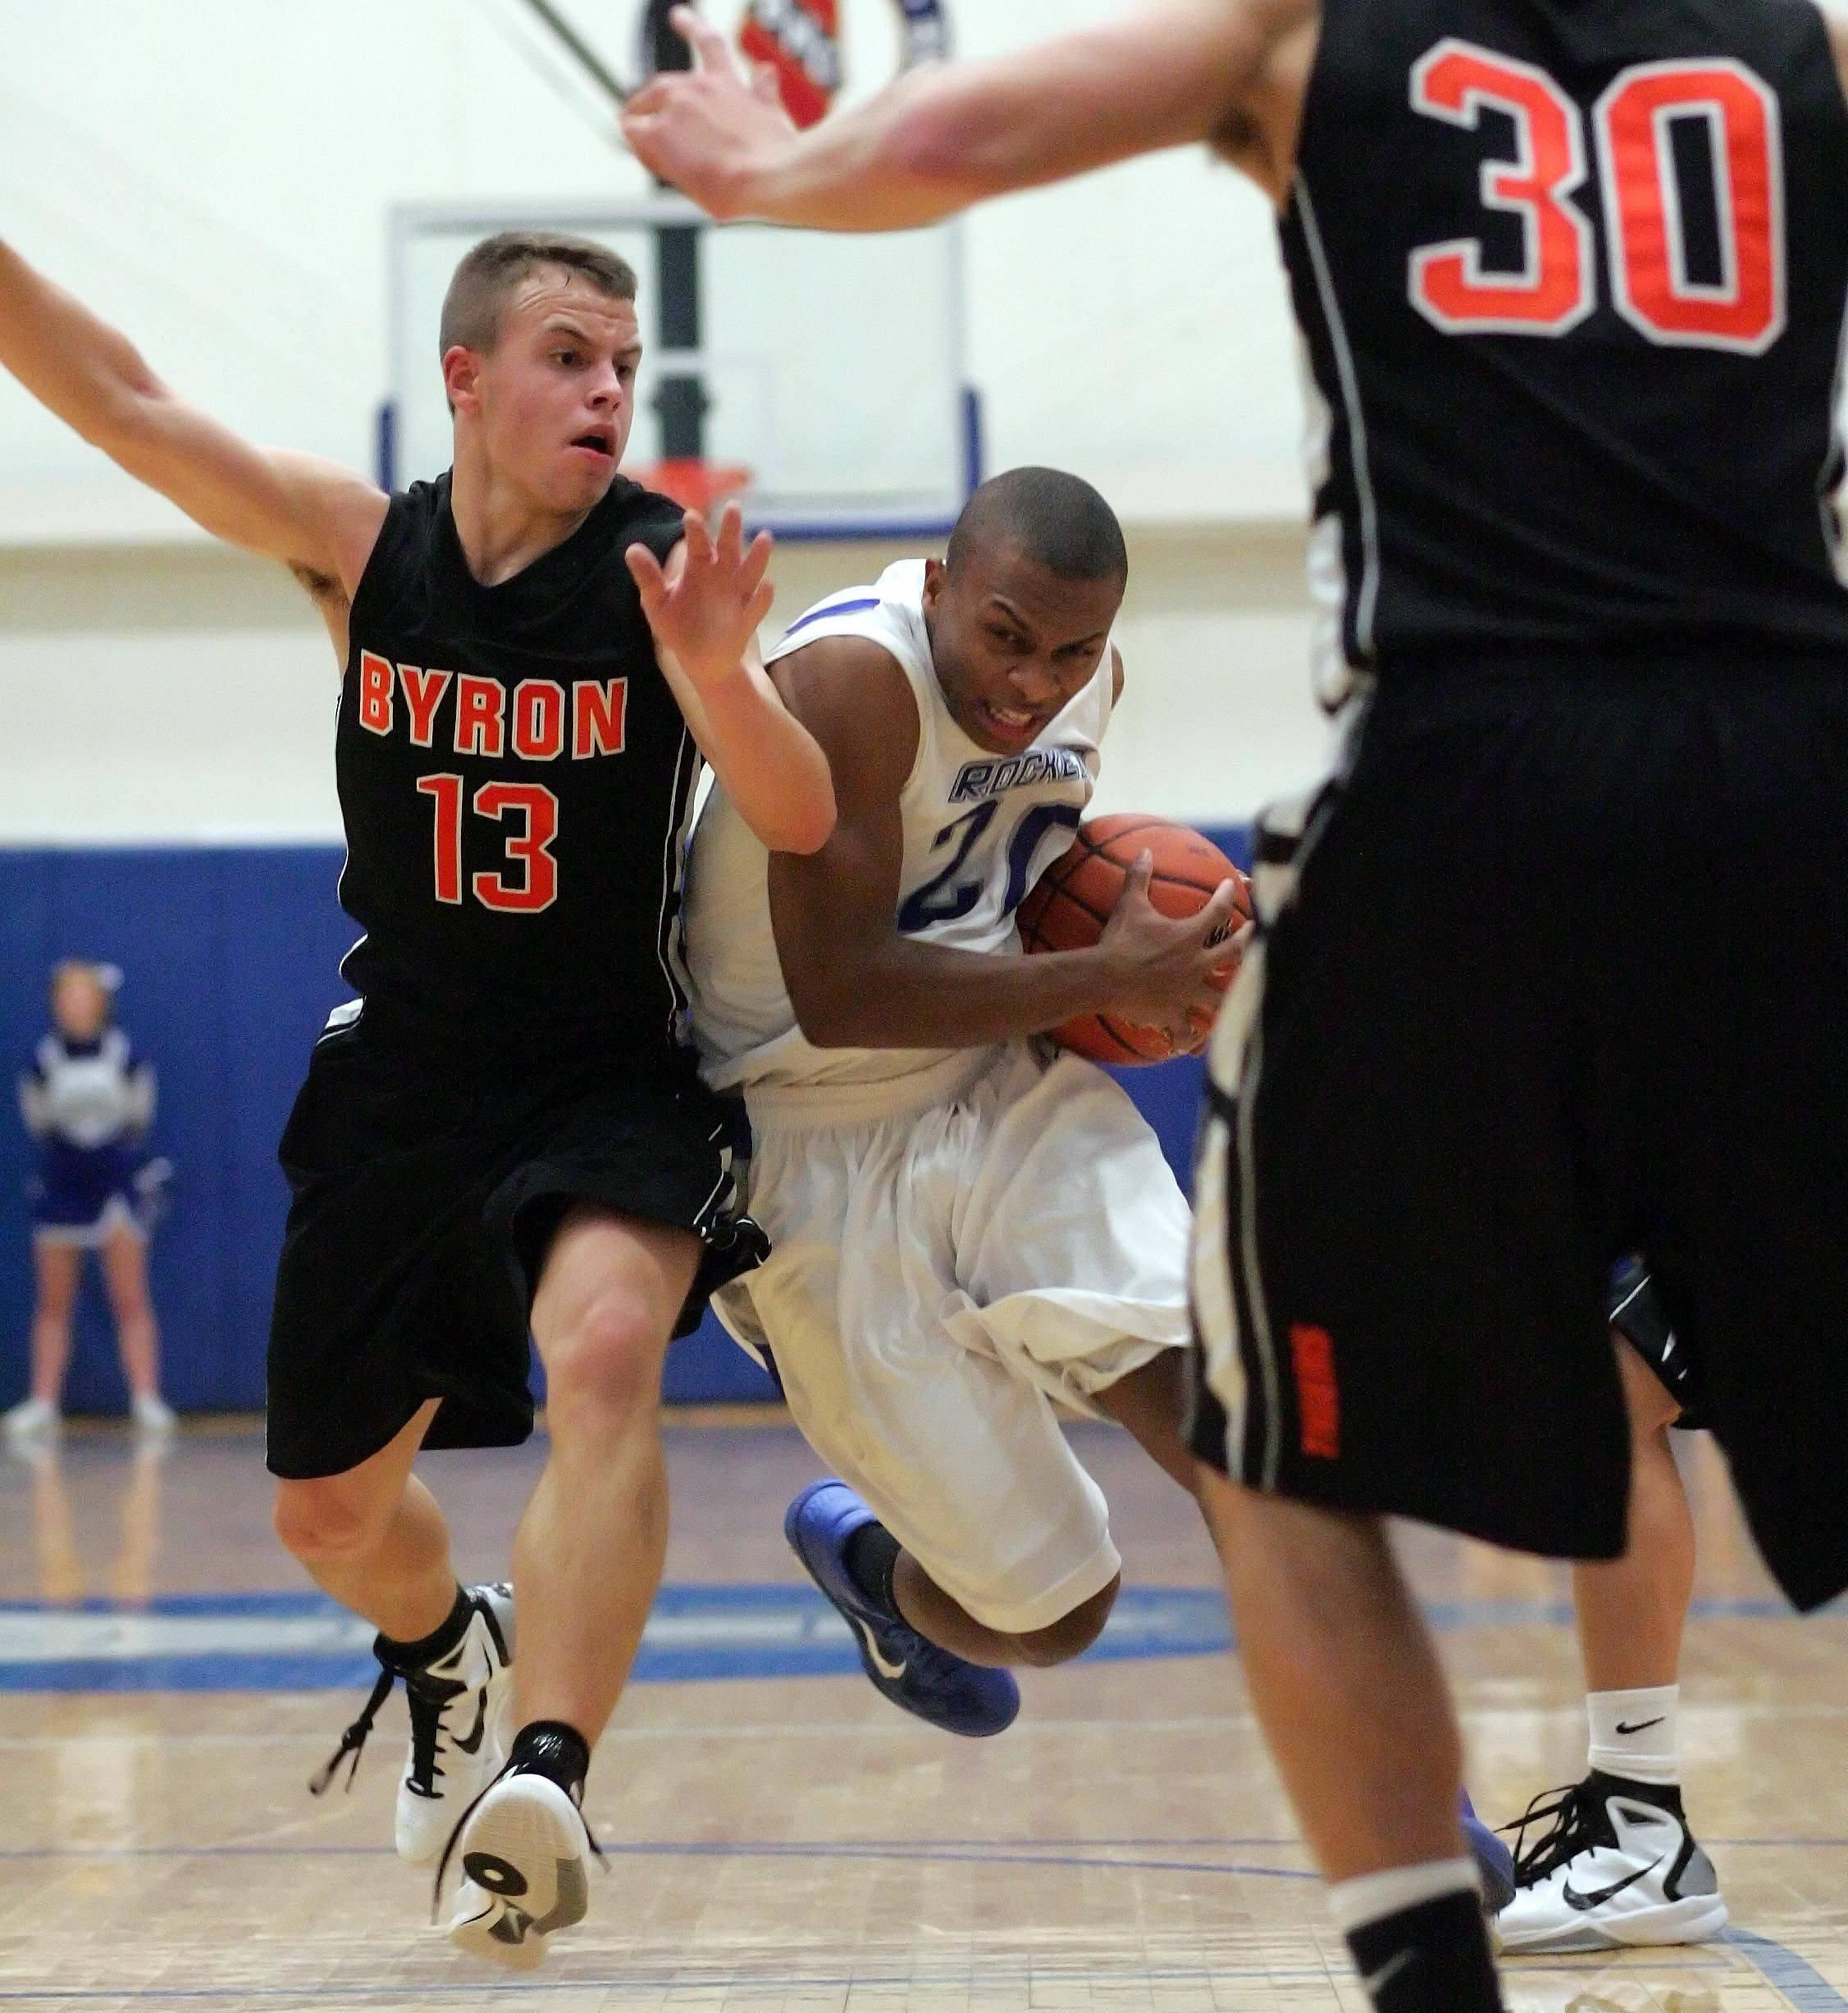 Burlington Central guard Ray Hunnicutt slips past Byron's Matt Groharing.